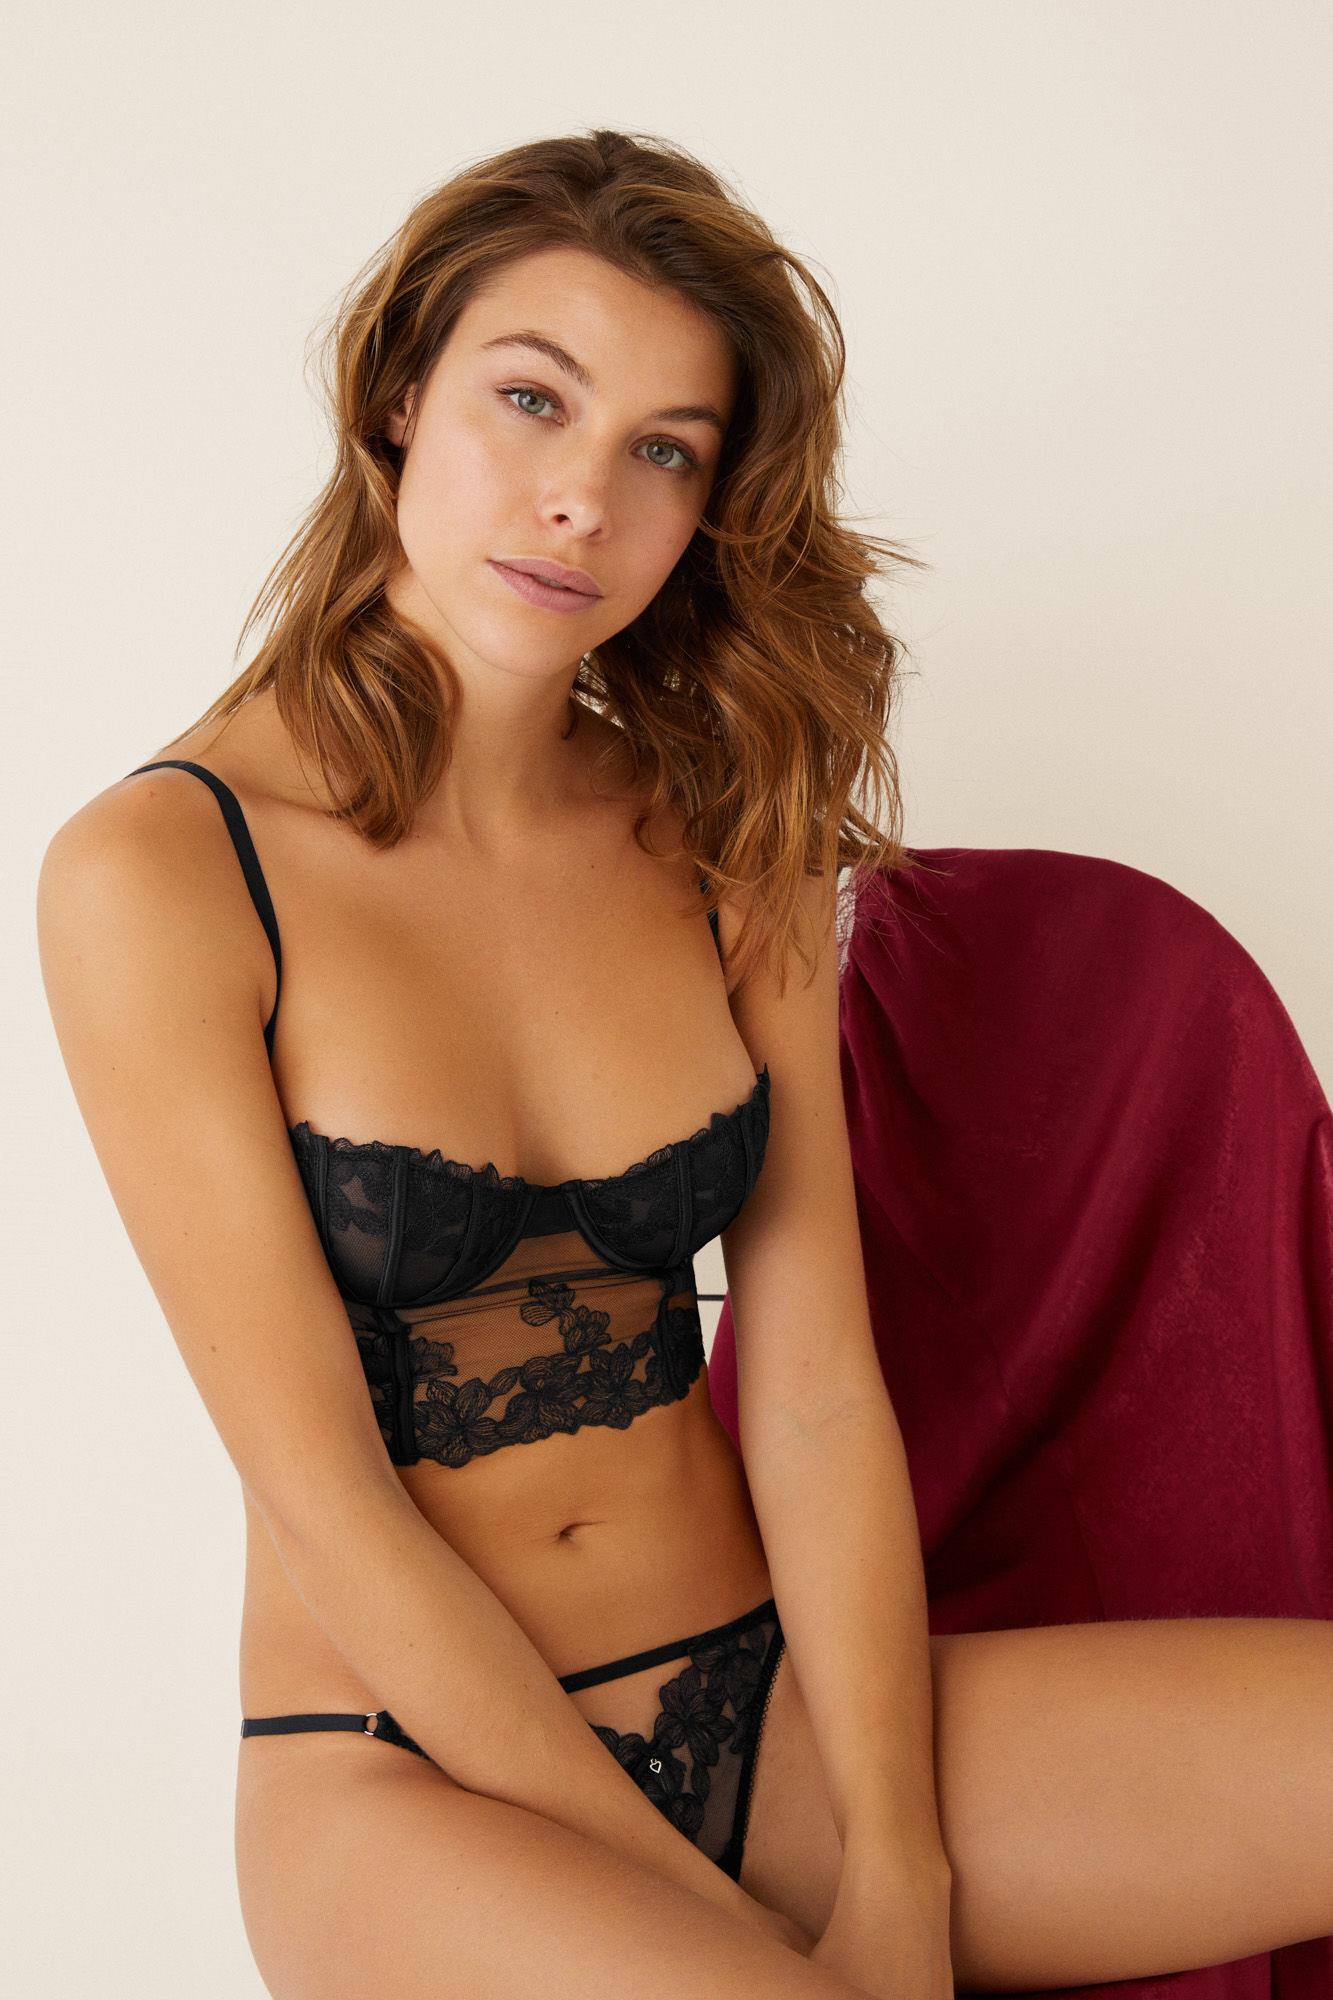 17,99 € women secret. Sujetador balconette